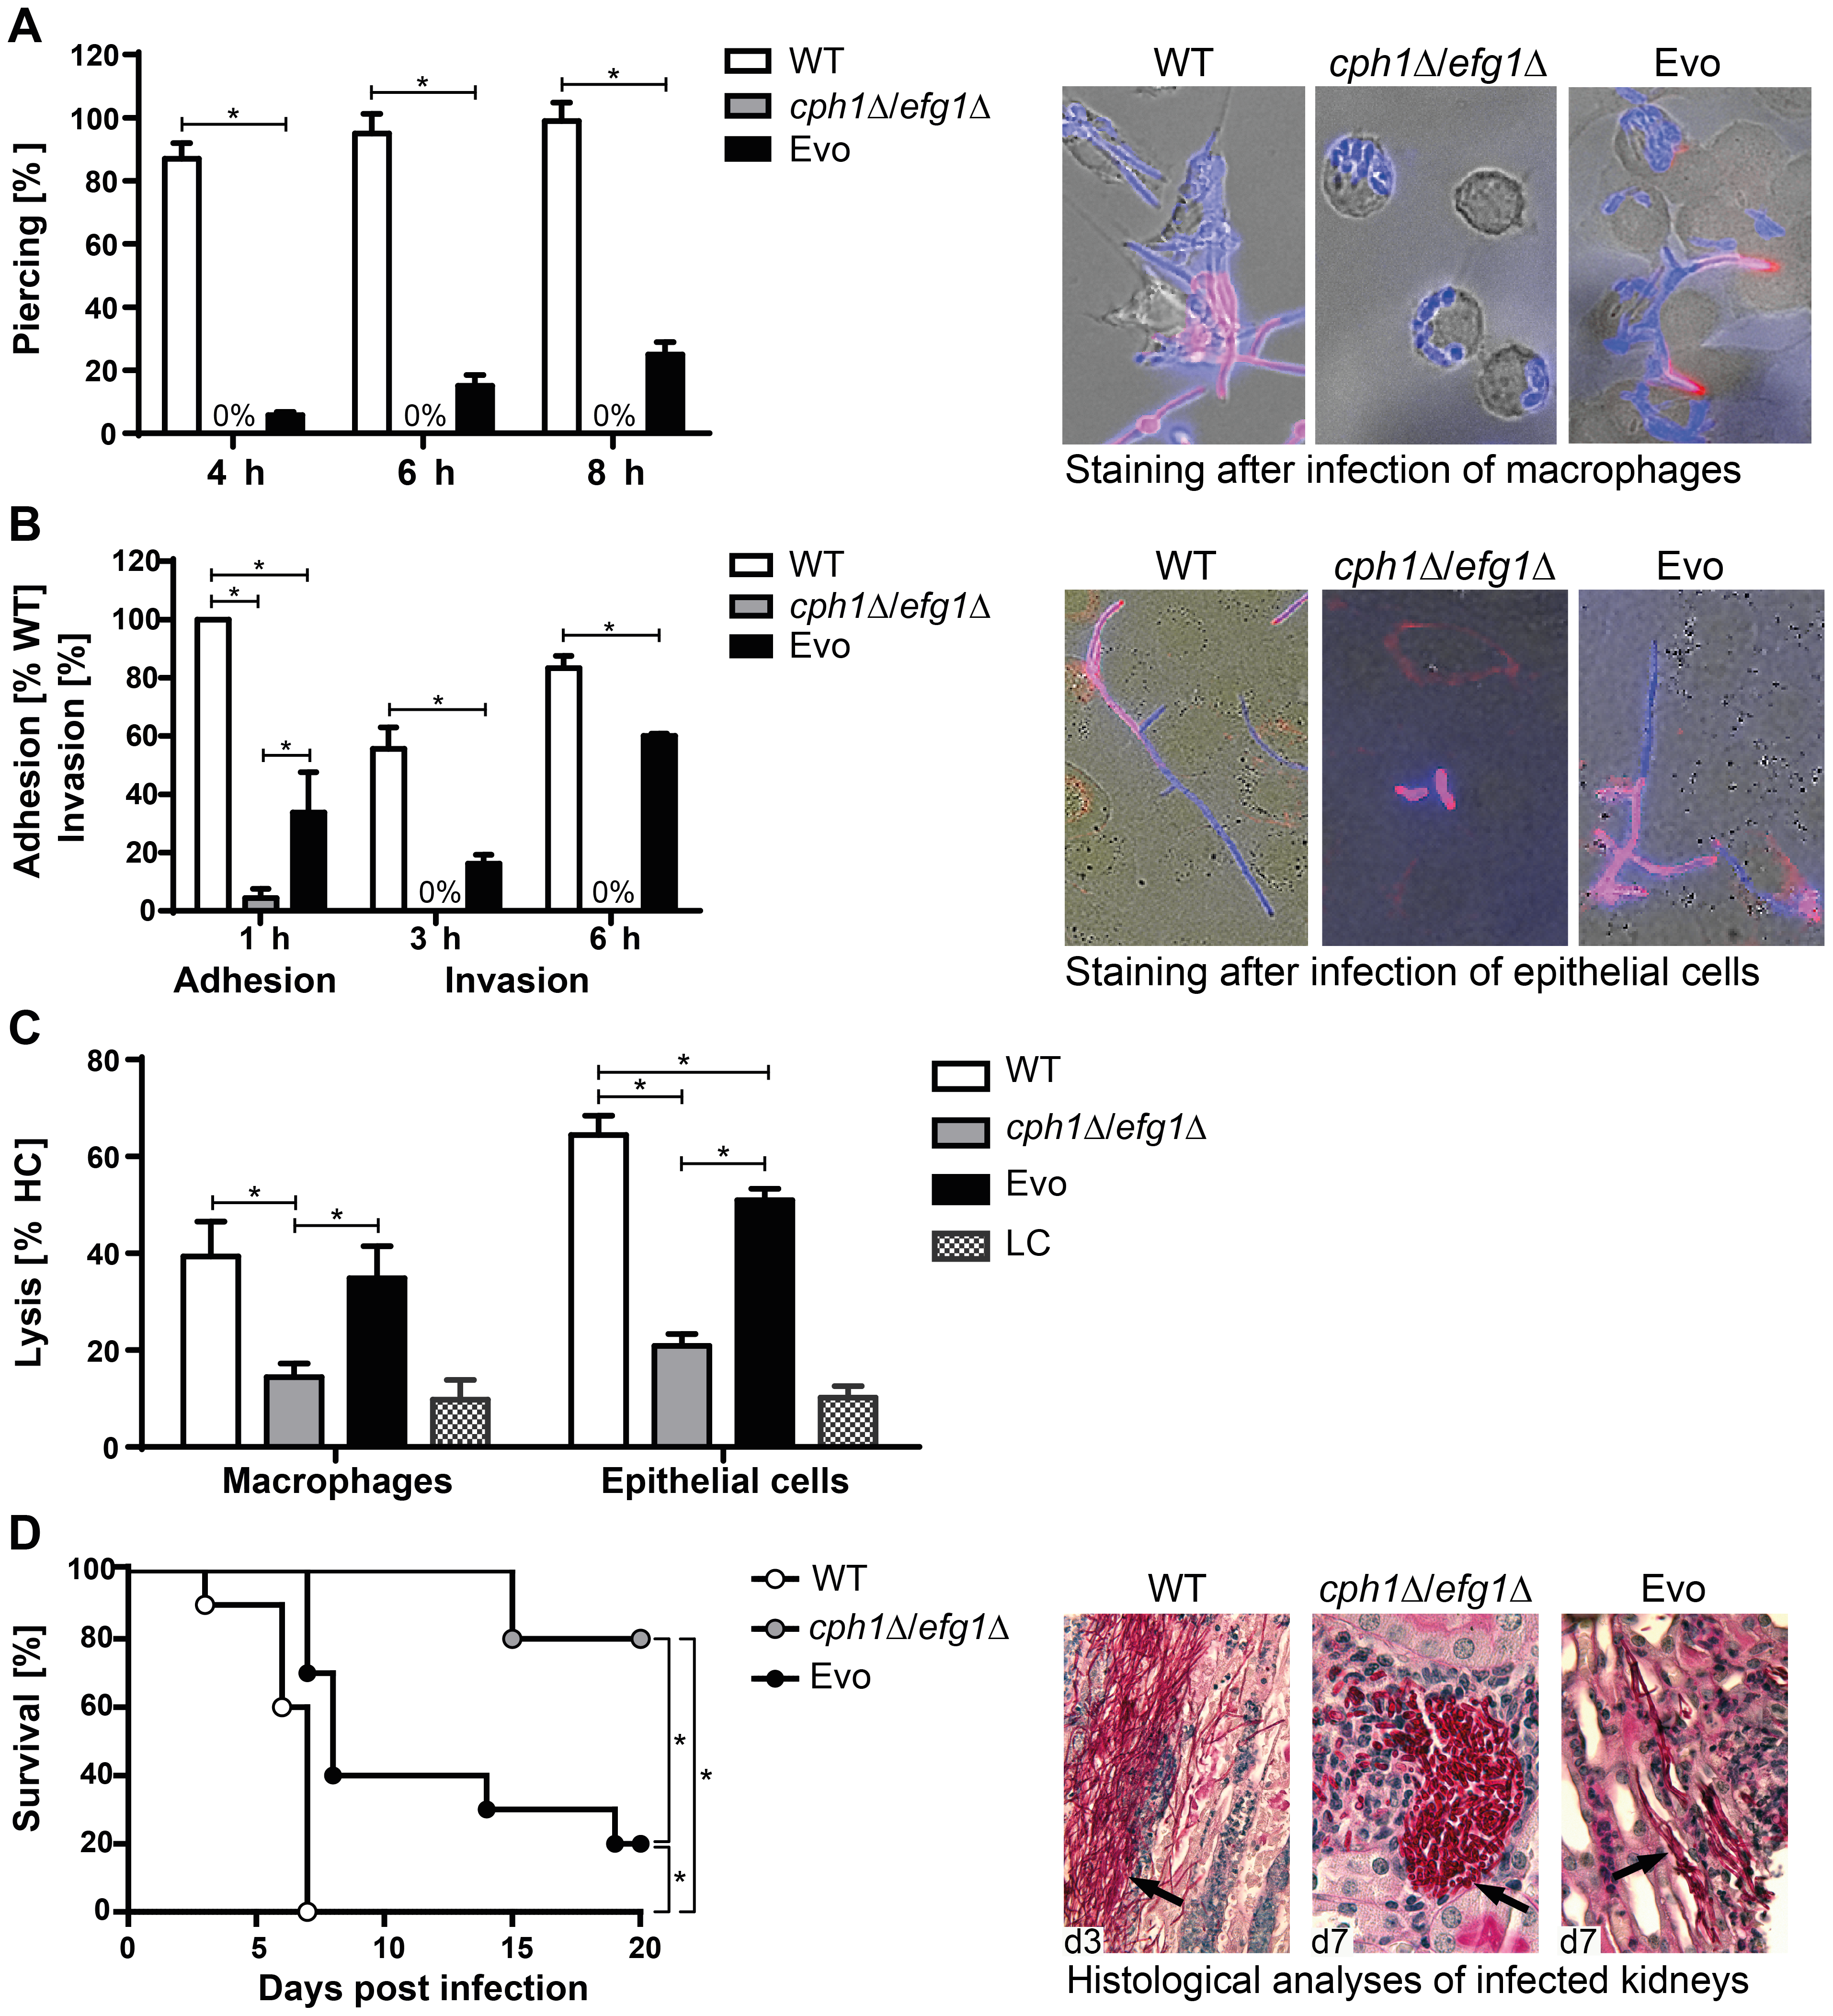 Characterization of Evo strain interaction with host cells and virulence potential.